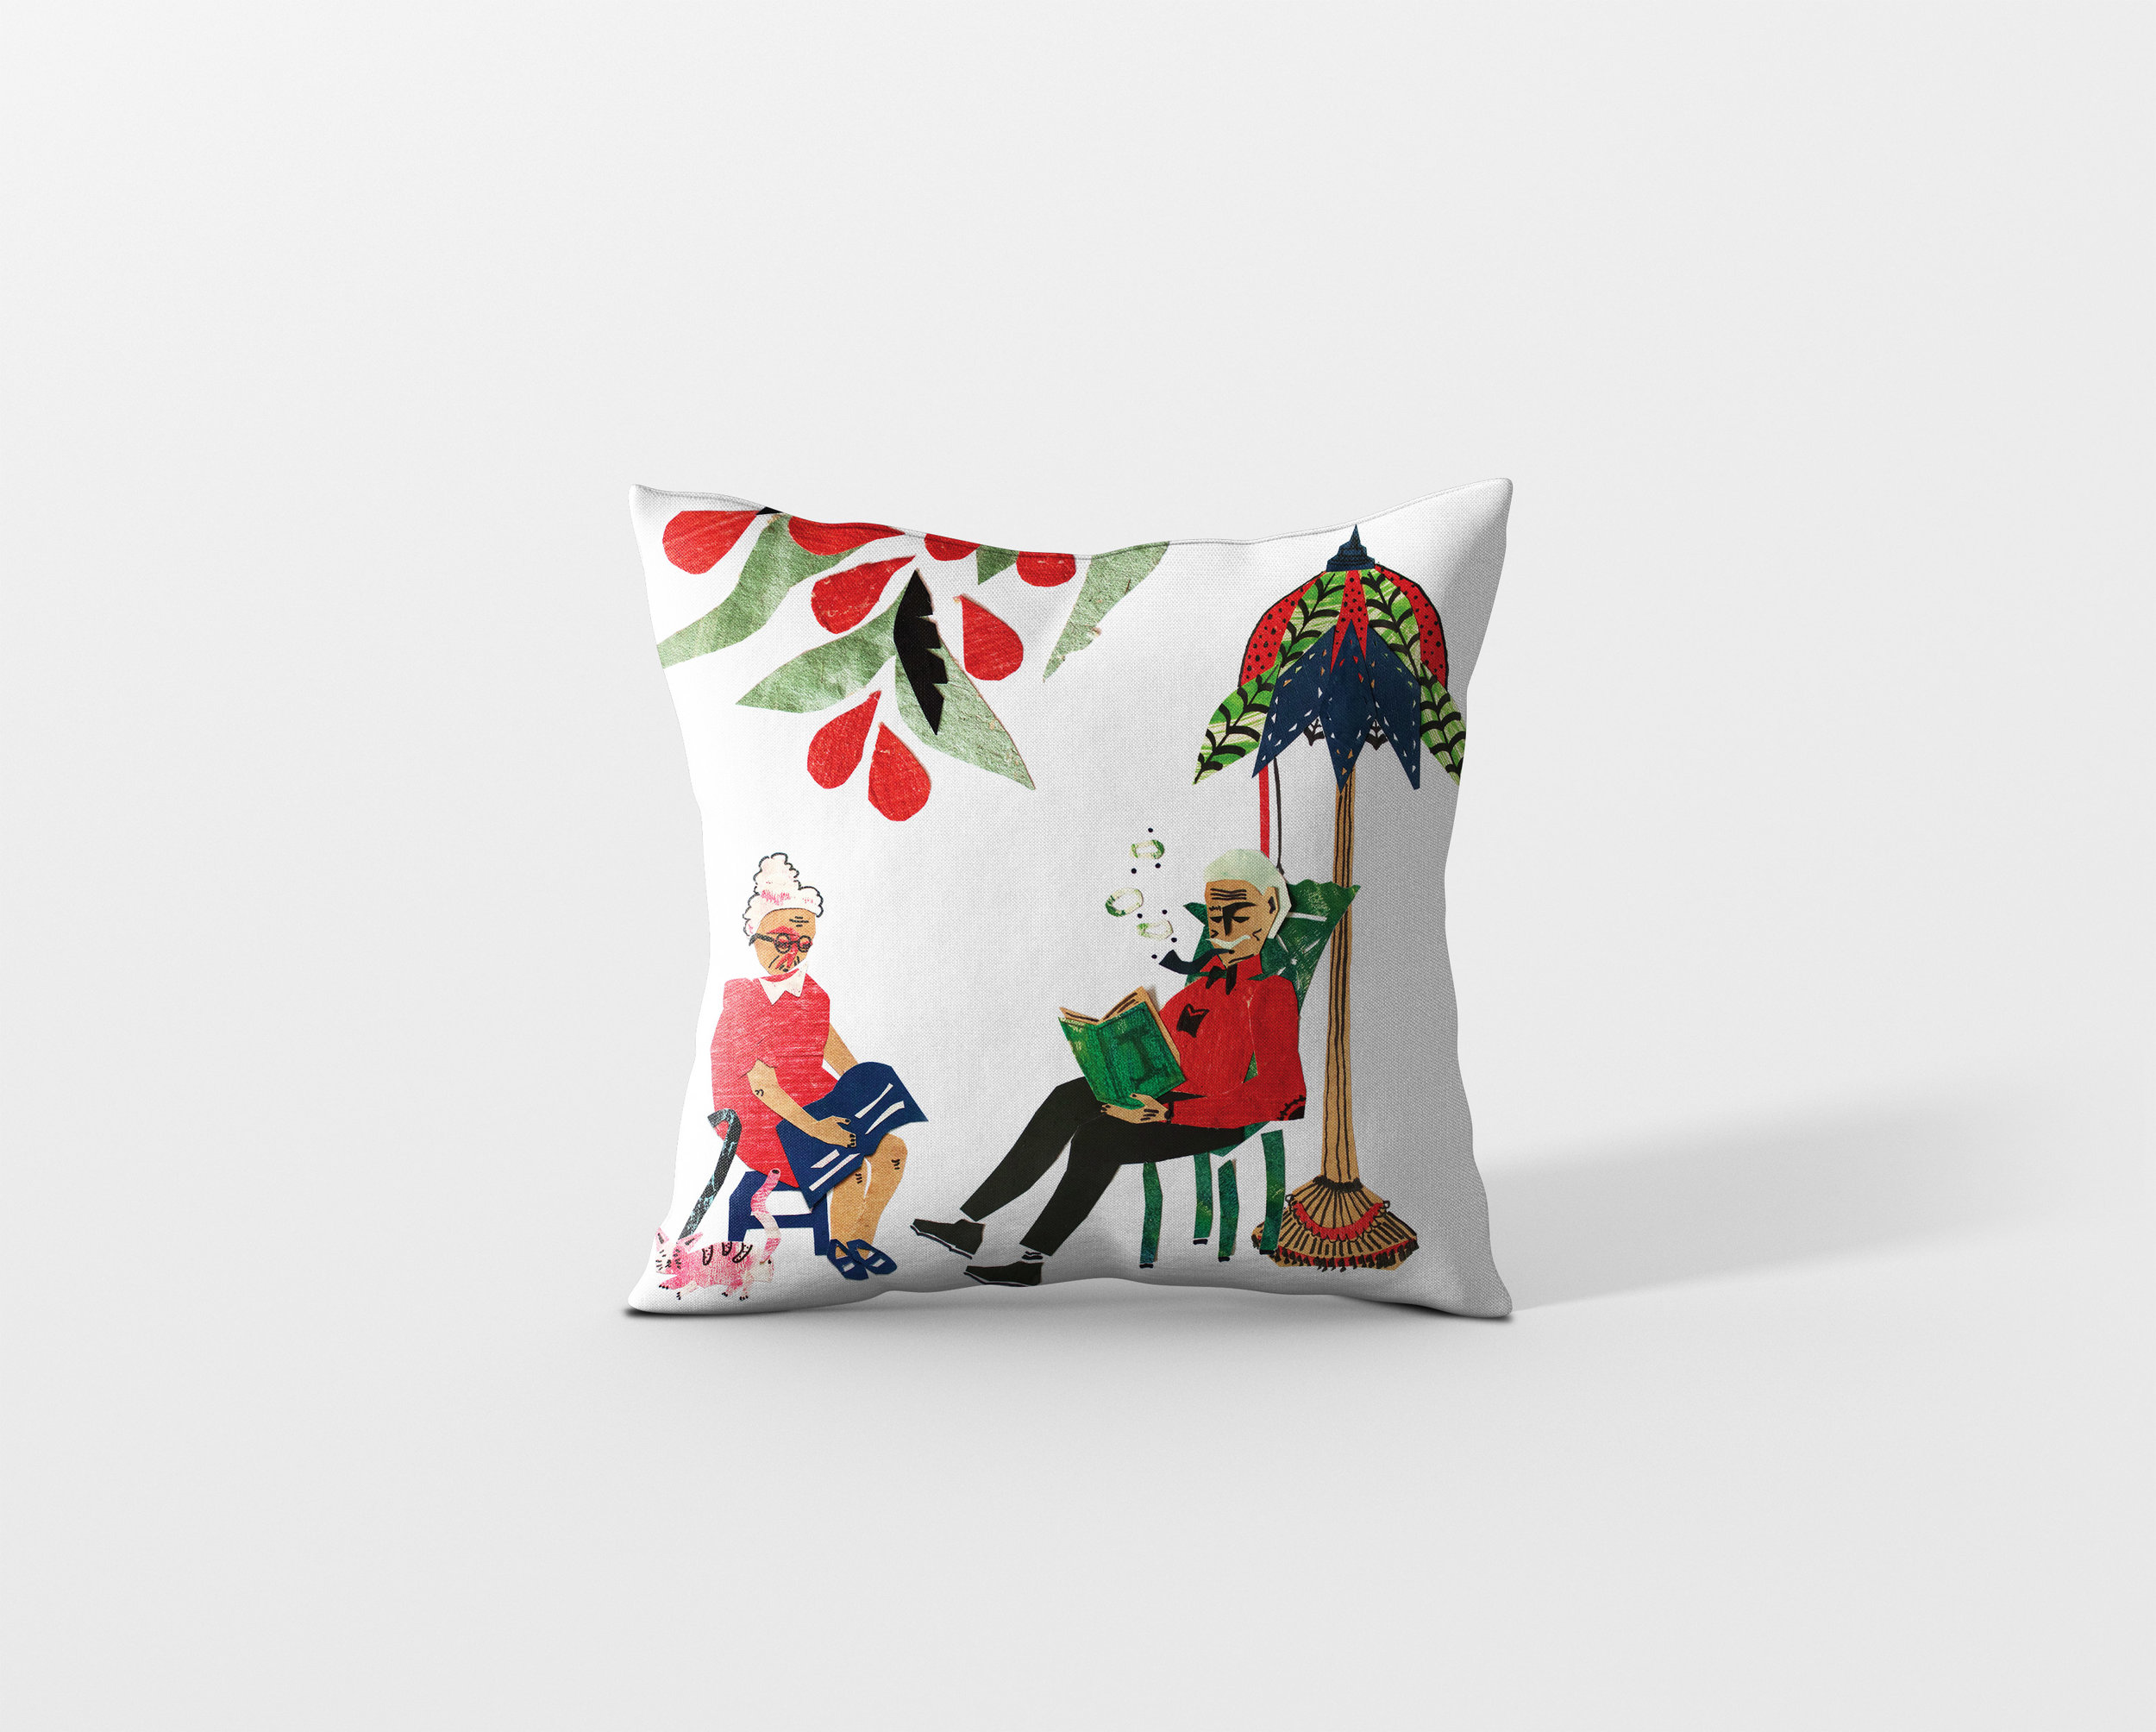 Pillowcase with illustrations digitally printed on.